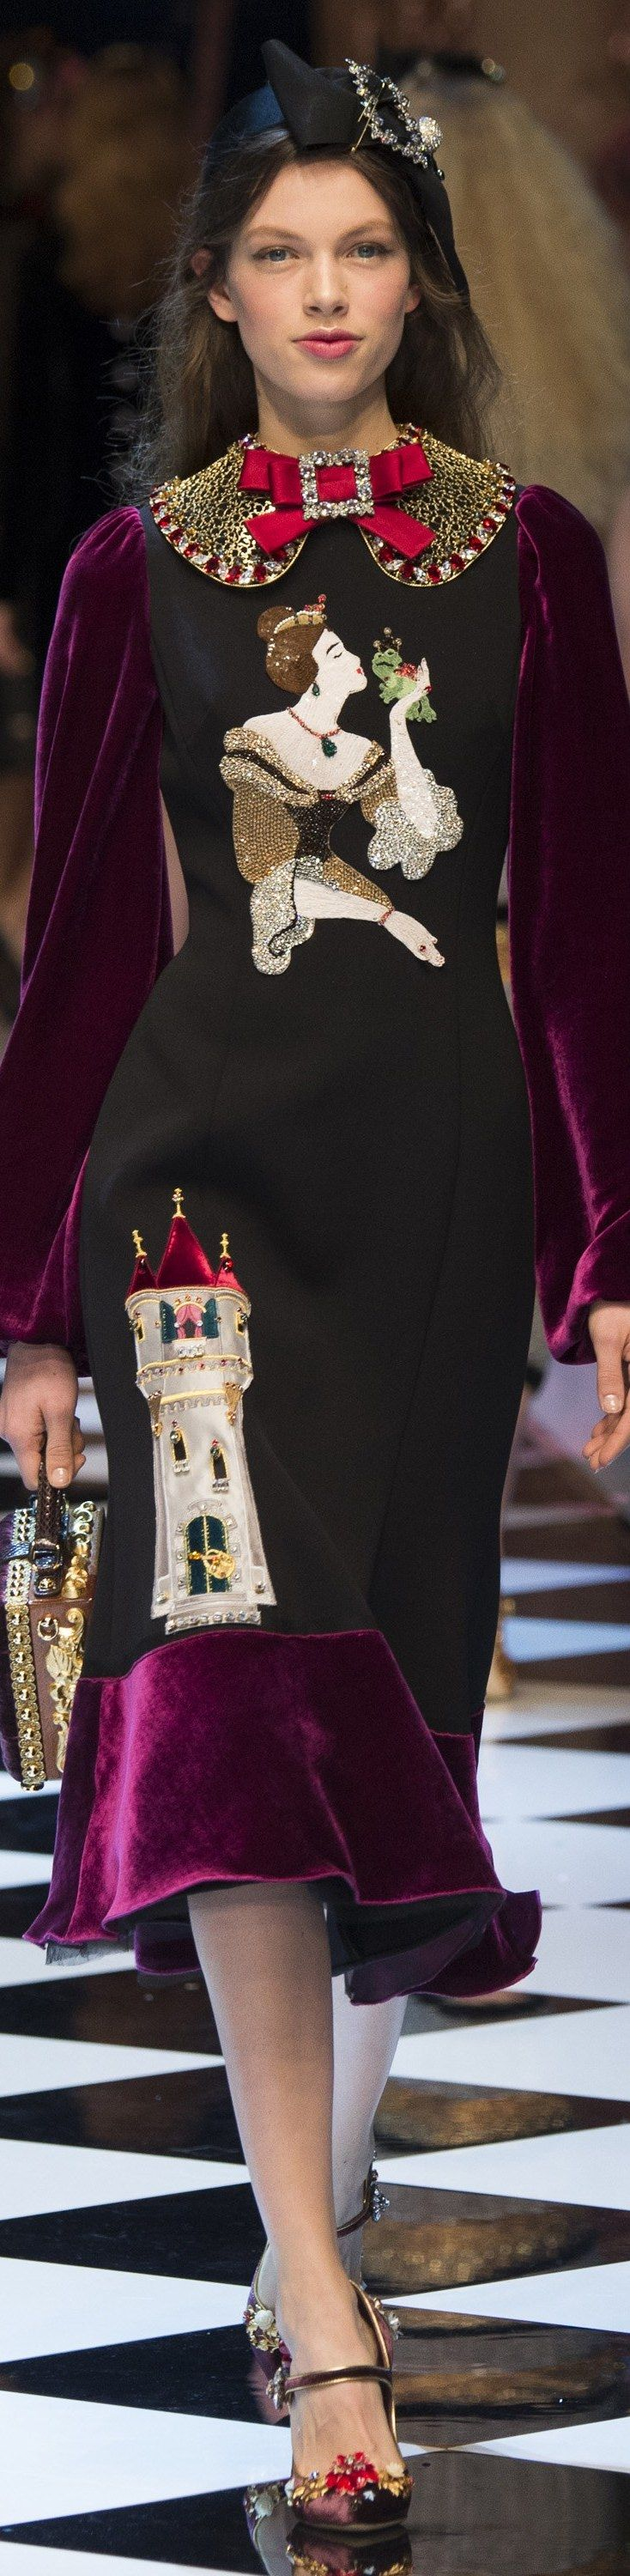 Dolce & Gabbana - FALL 2016 READY-TO-WEAR